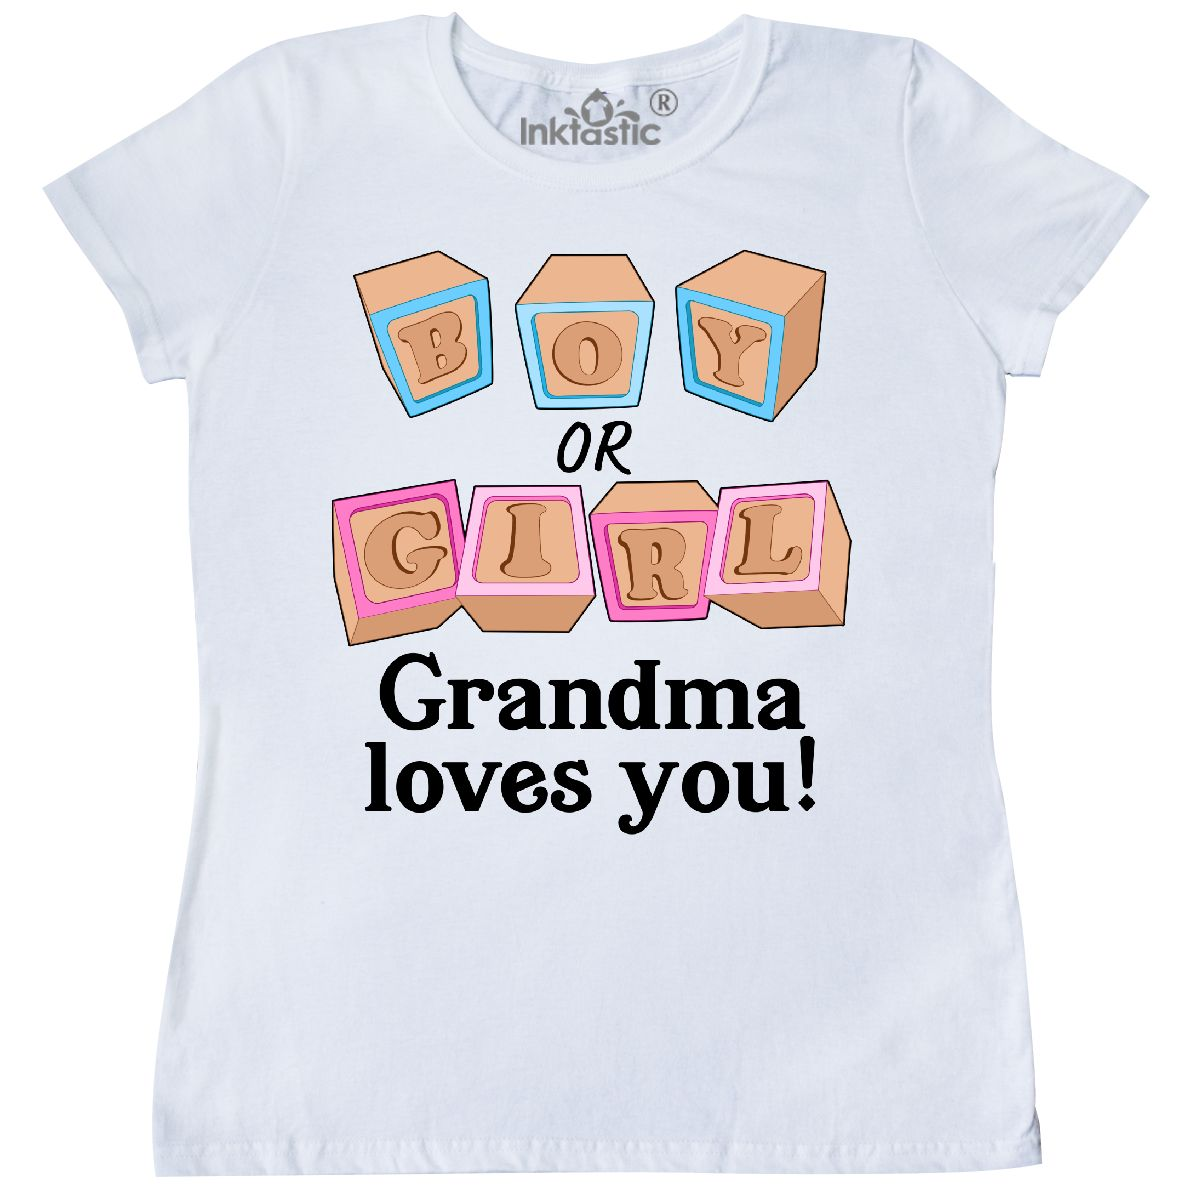 Inktastic Pink Or Blue Nana Loves You Women/'s T-Shirt Reveal Grandma Party Love